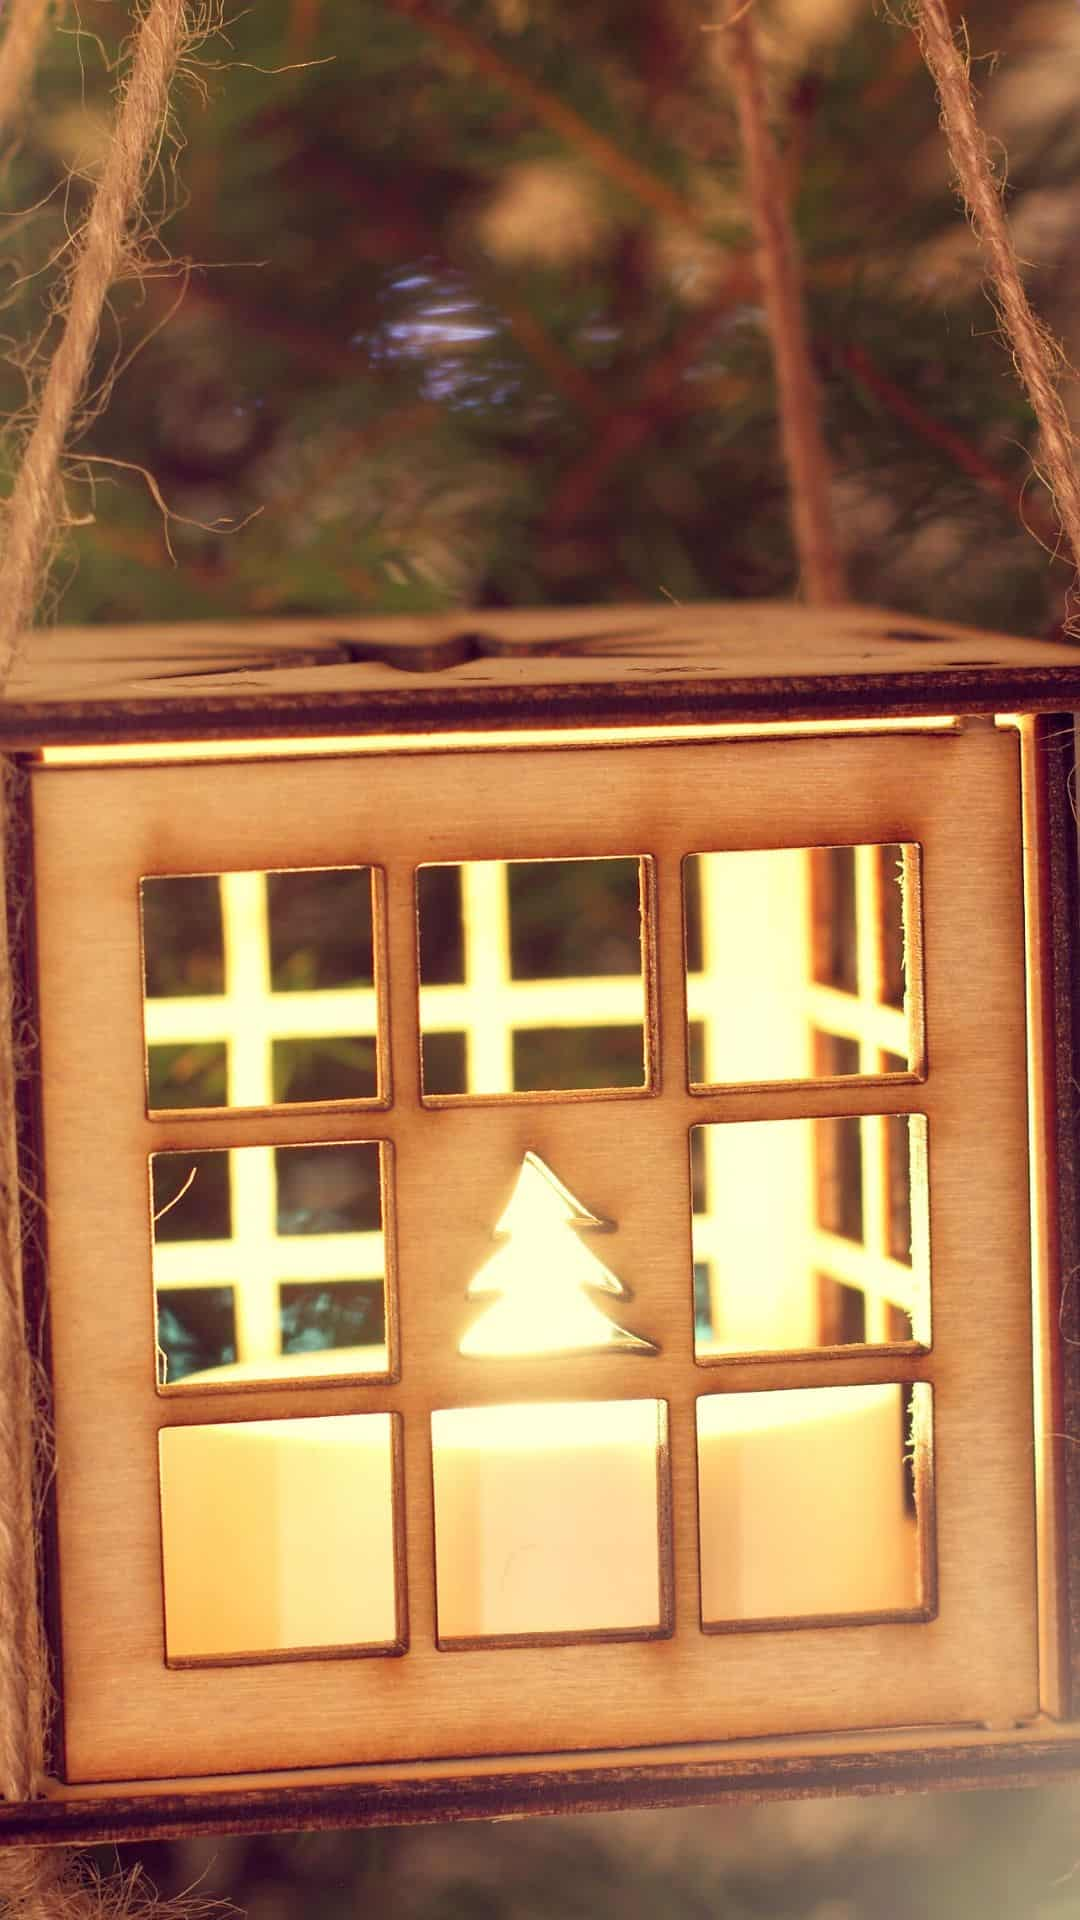 Cozy Christmas Backgrounds For iPhone Wallpaper Wooden Lantern